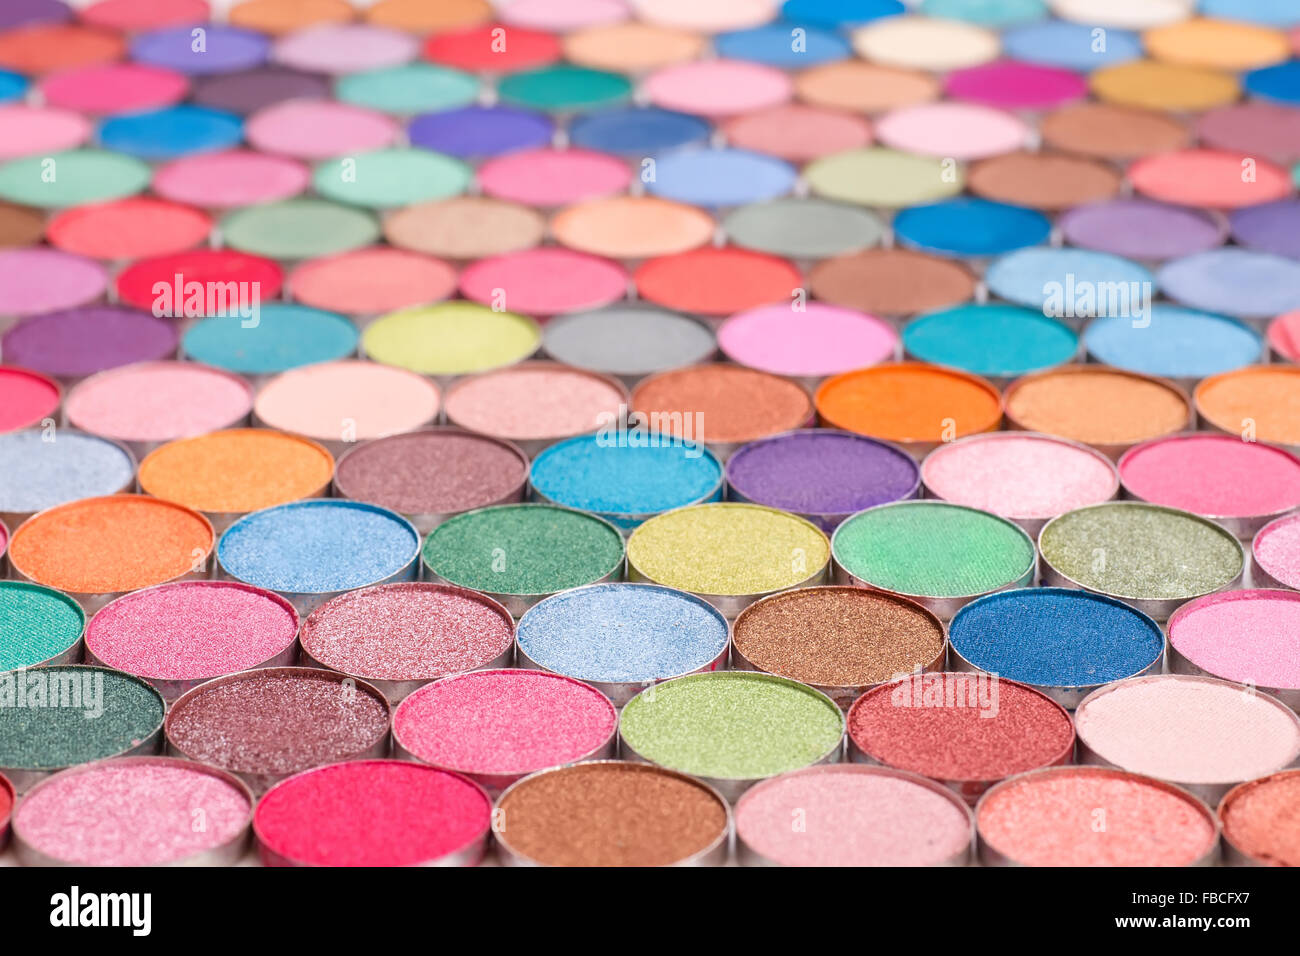 Background with large group of colored eyeshadow - Stock Image